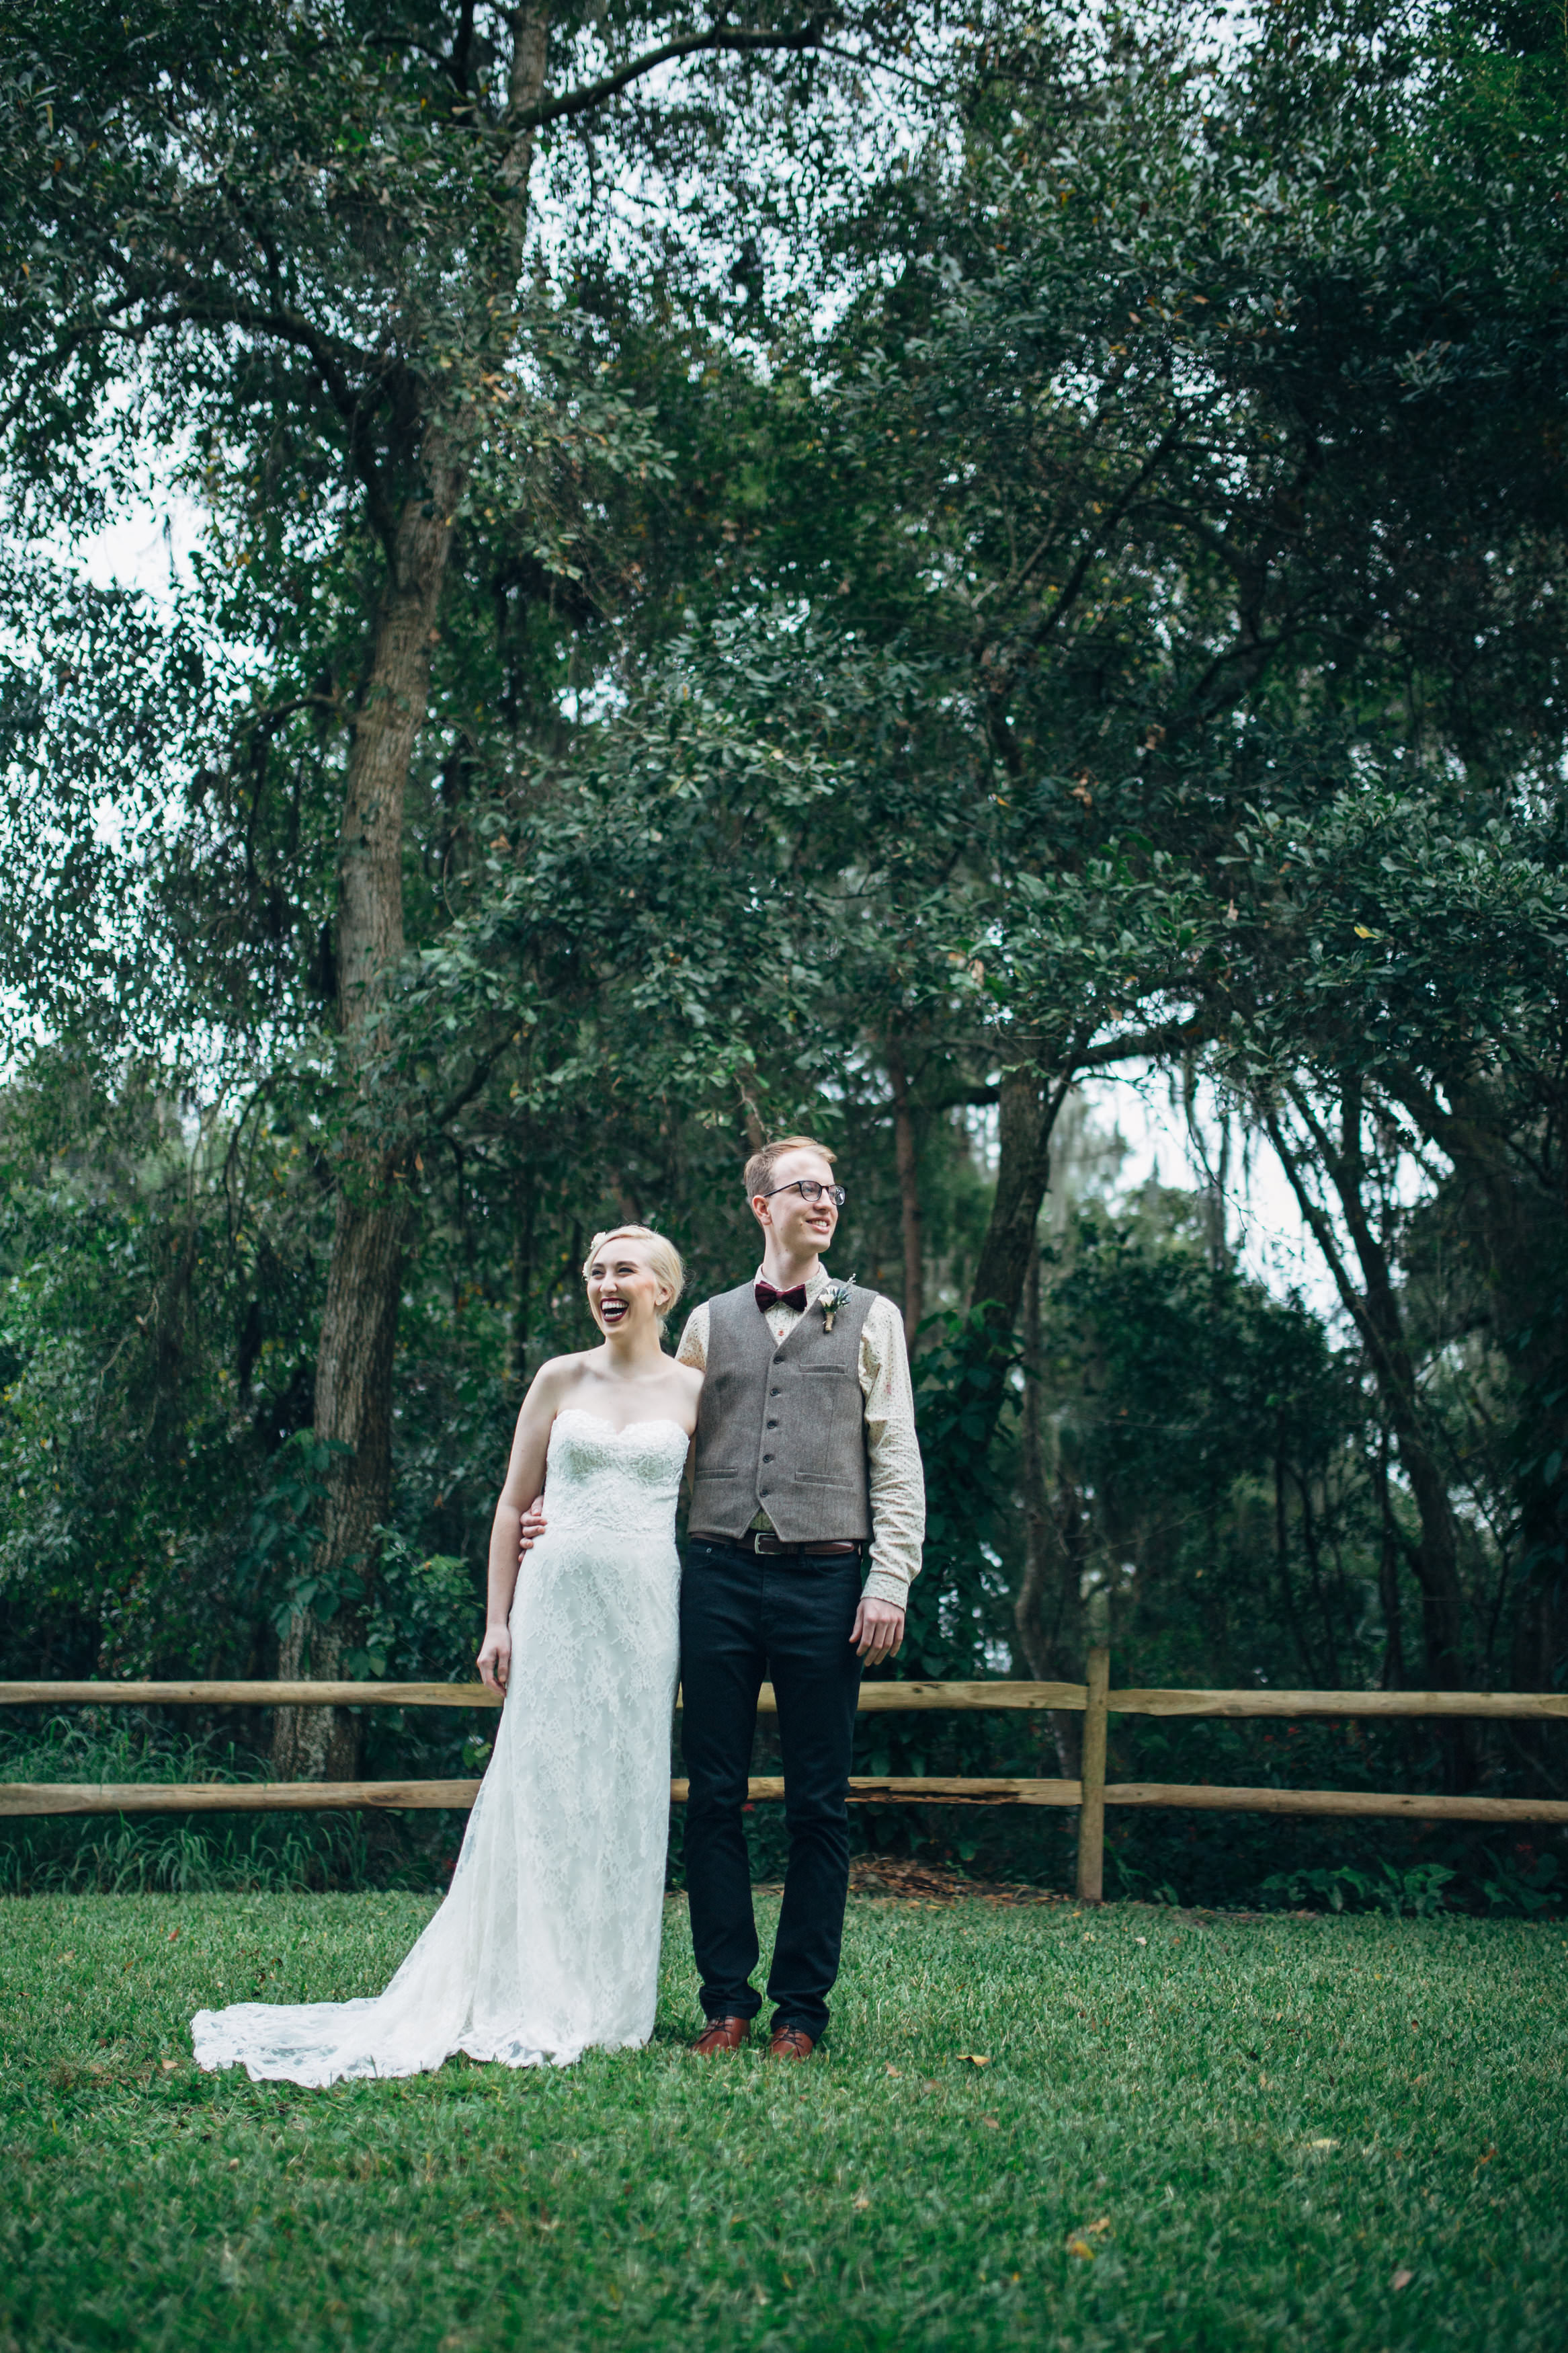 Devony & Ryan | Wedding | Cross Creek Ranch | Dover, Florida | Benjamin Hewitt Photography